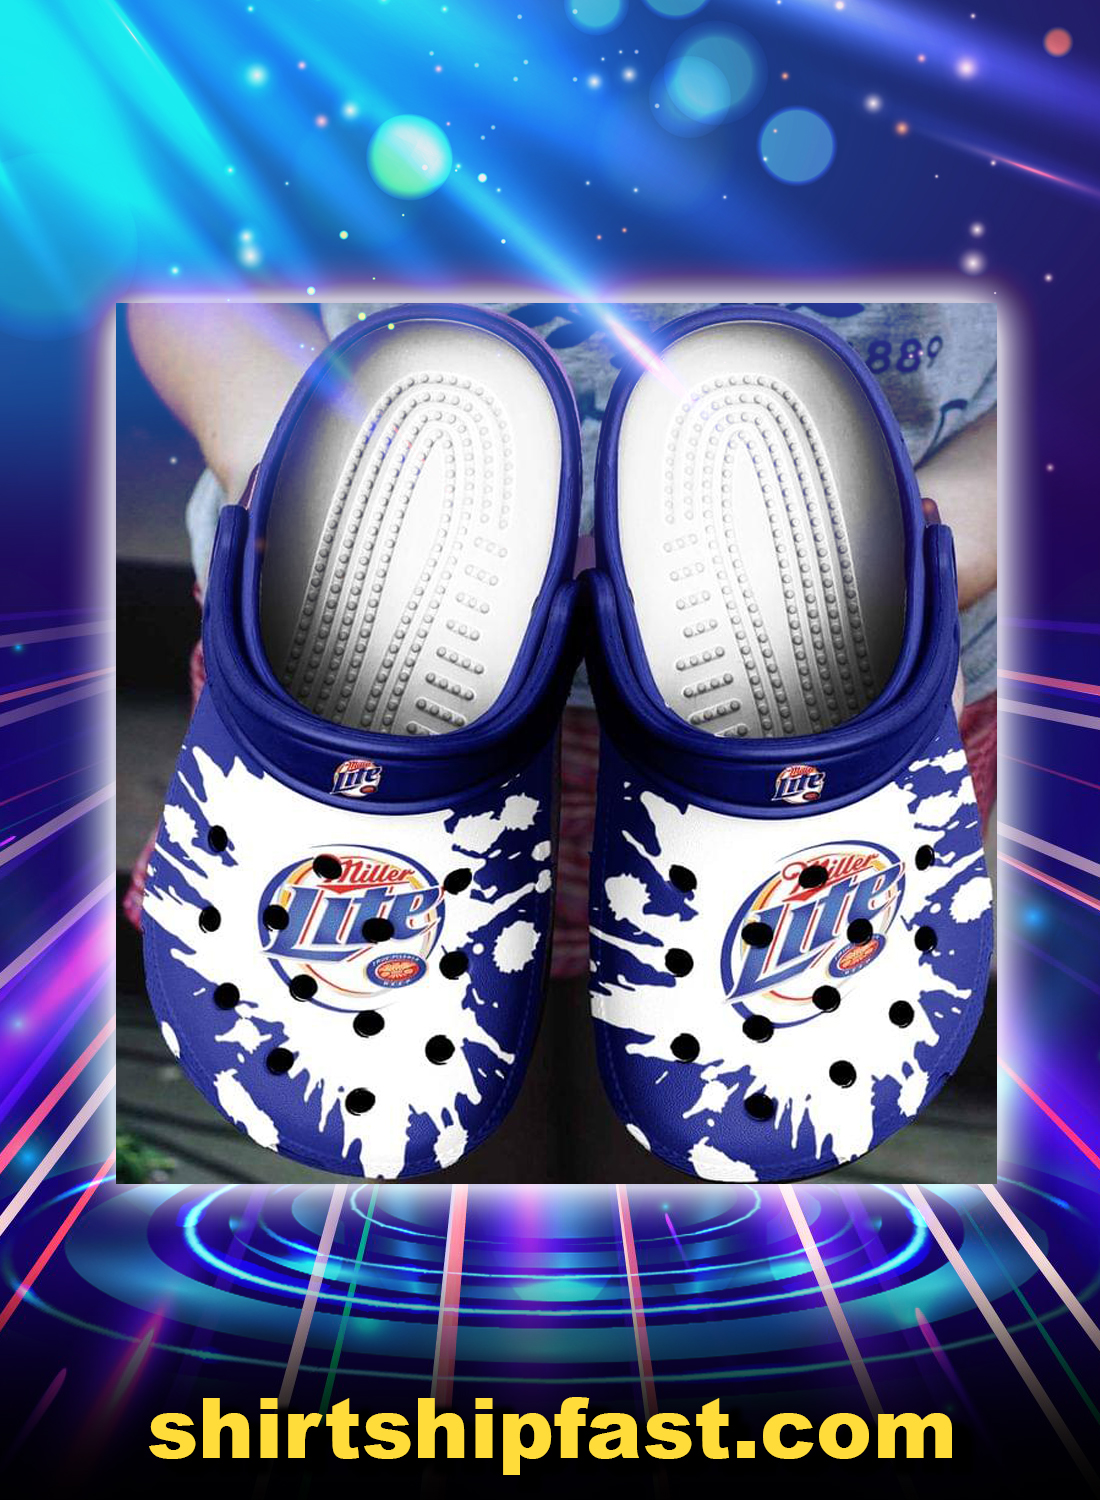 Miller lite crocband crocs shoes - Picture 1